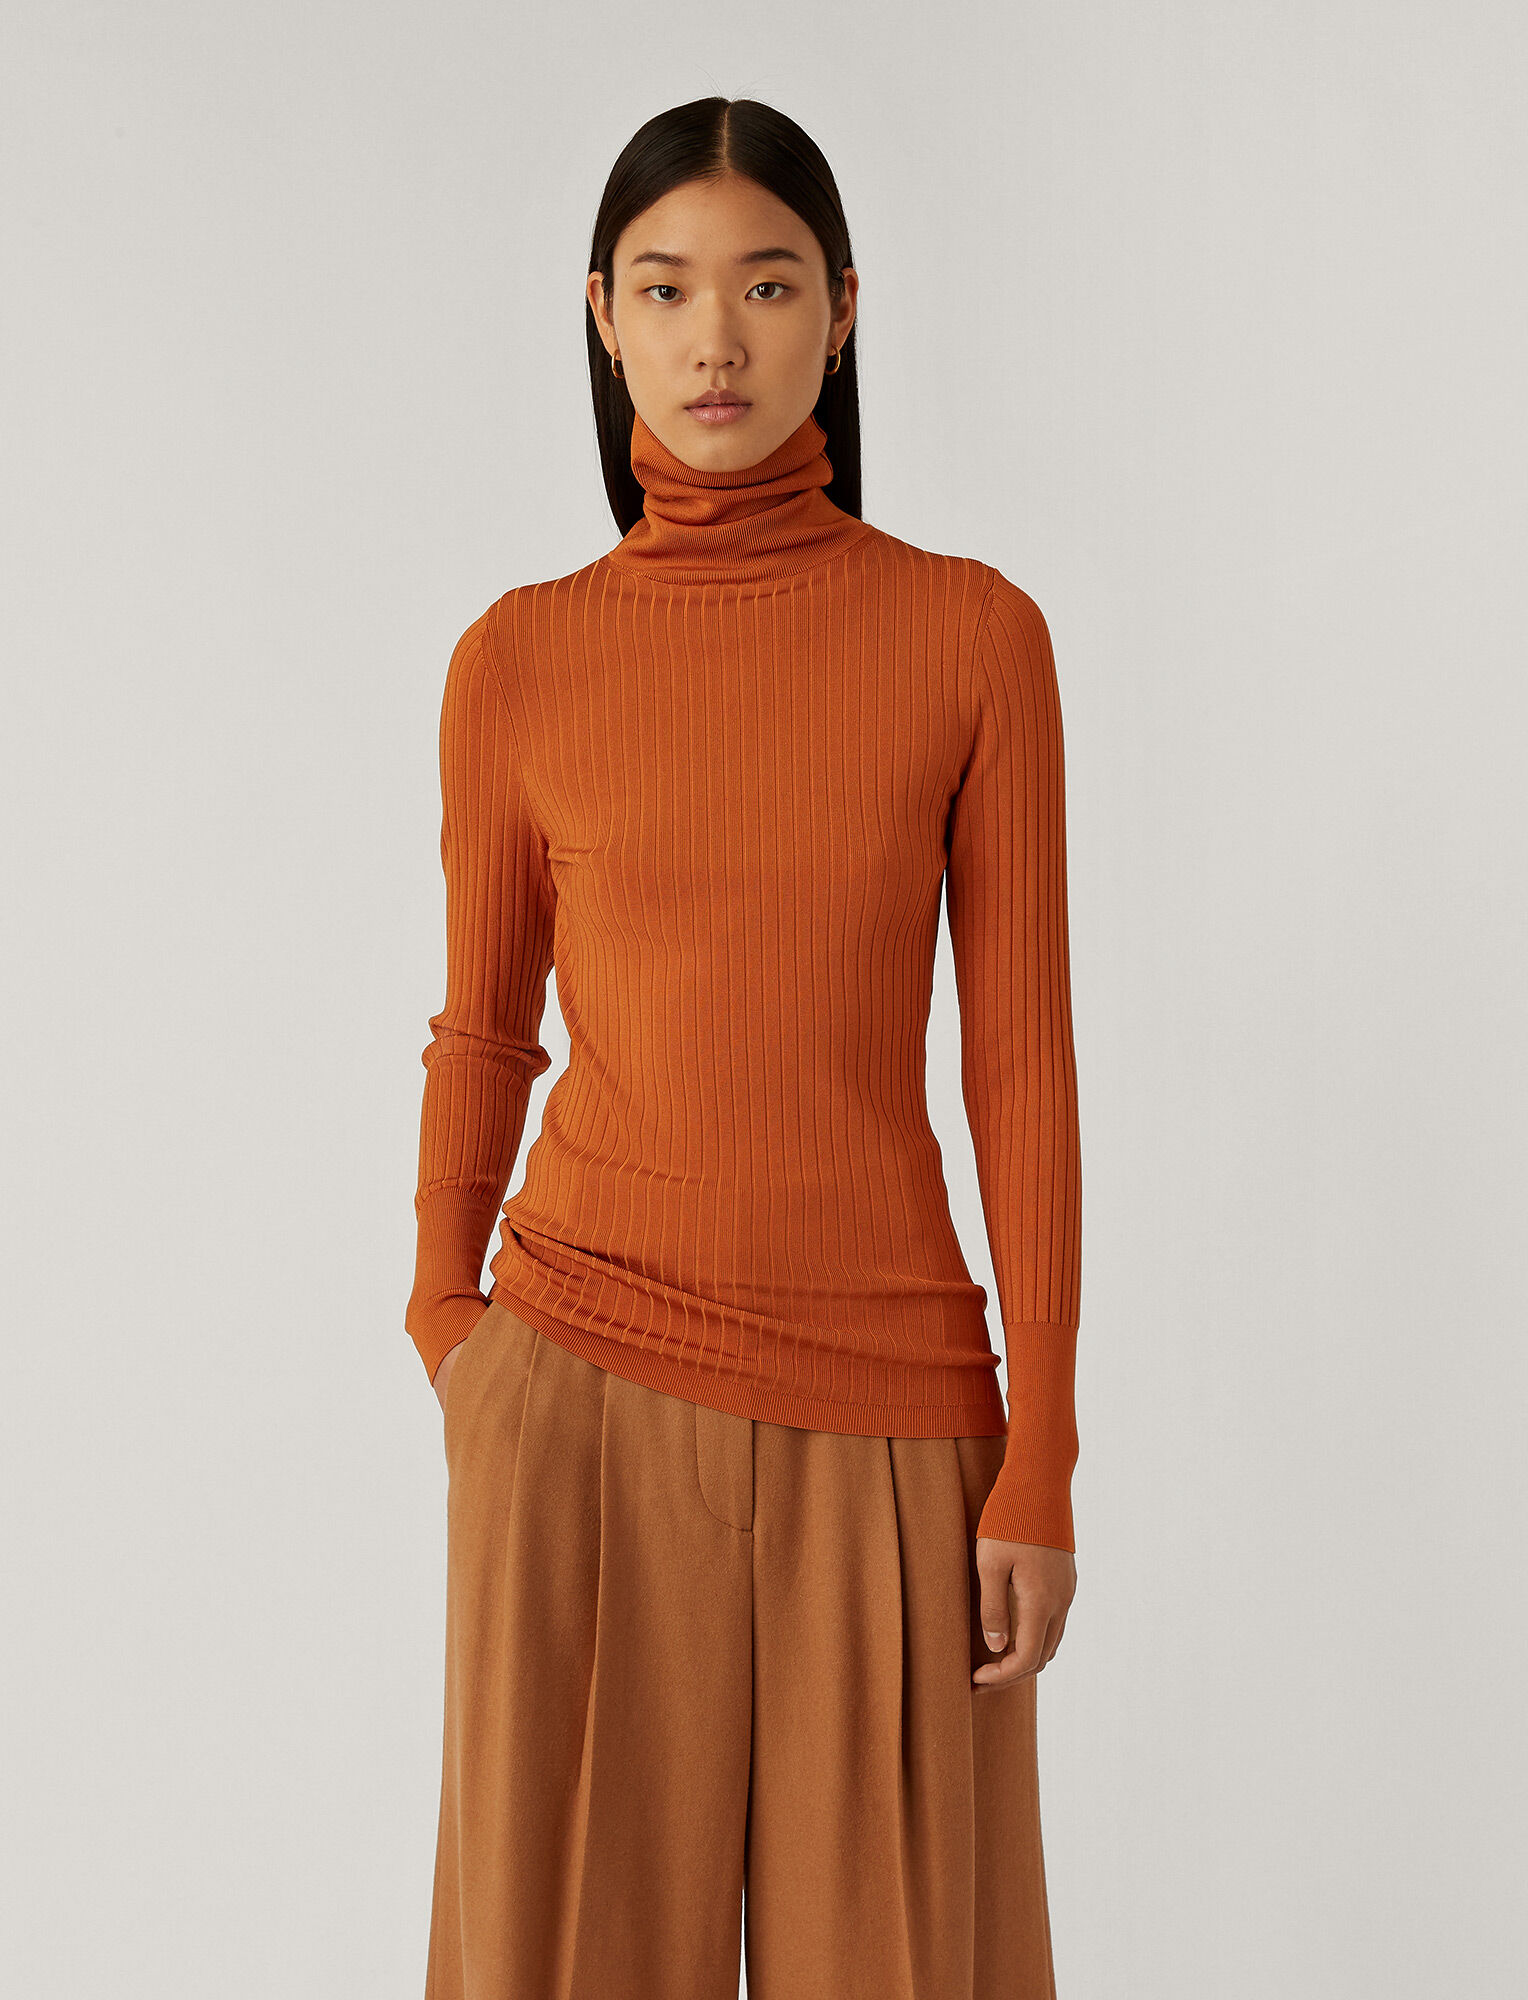 Joseph, High Neck Shiny Knit, in Sienna